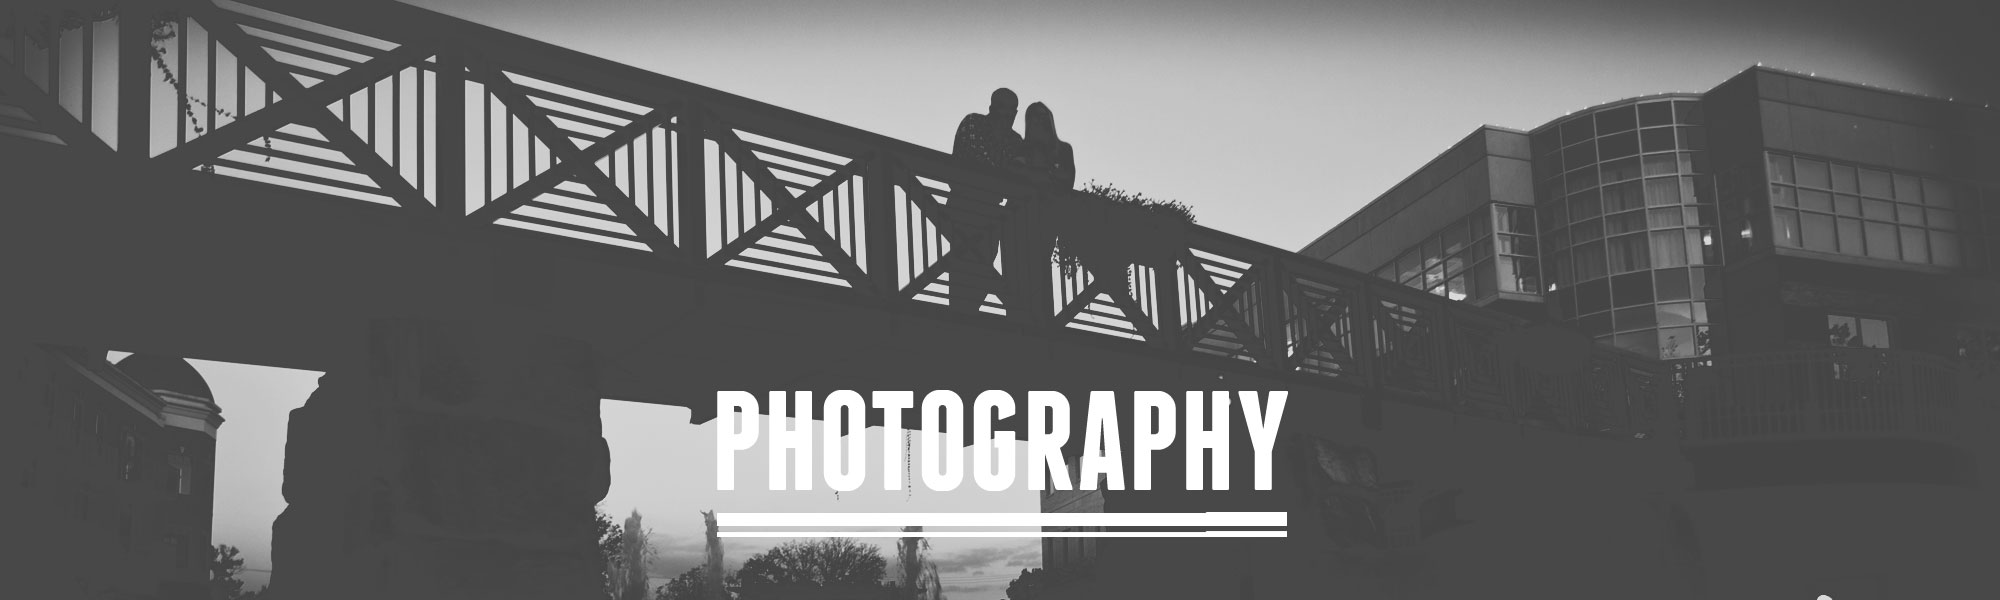 Photography - Engagement Photography, Senior Pictures, Family Portraits, Event Photography